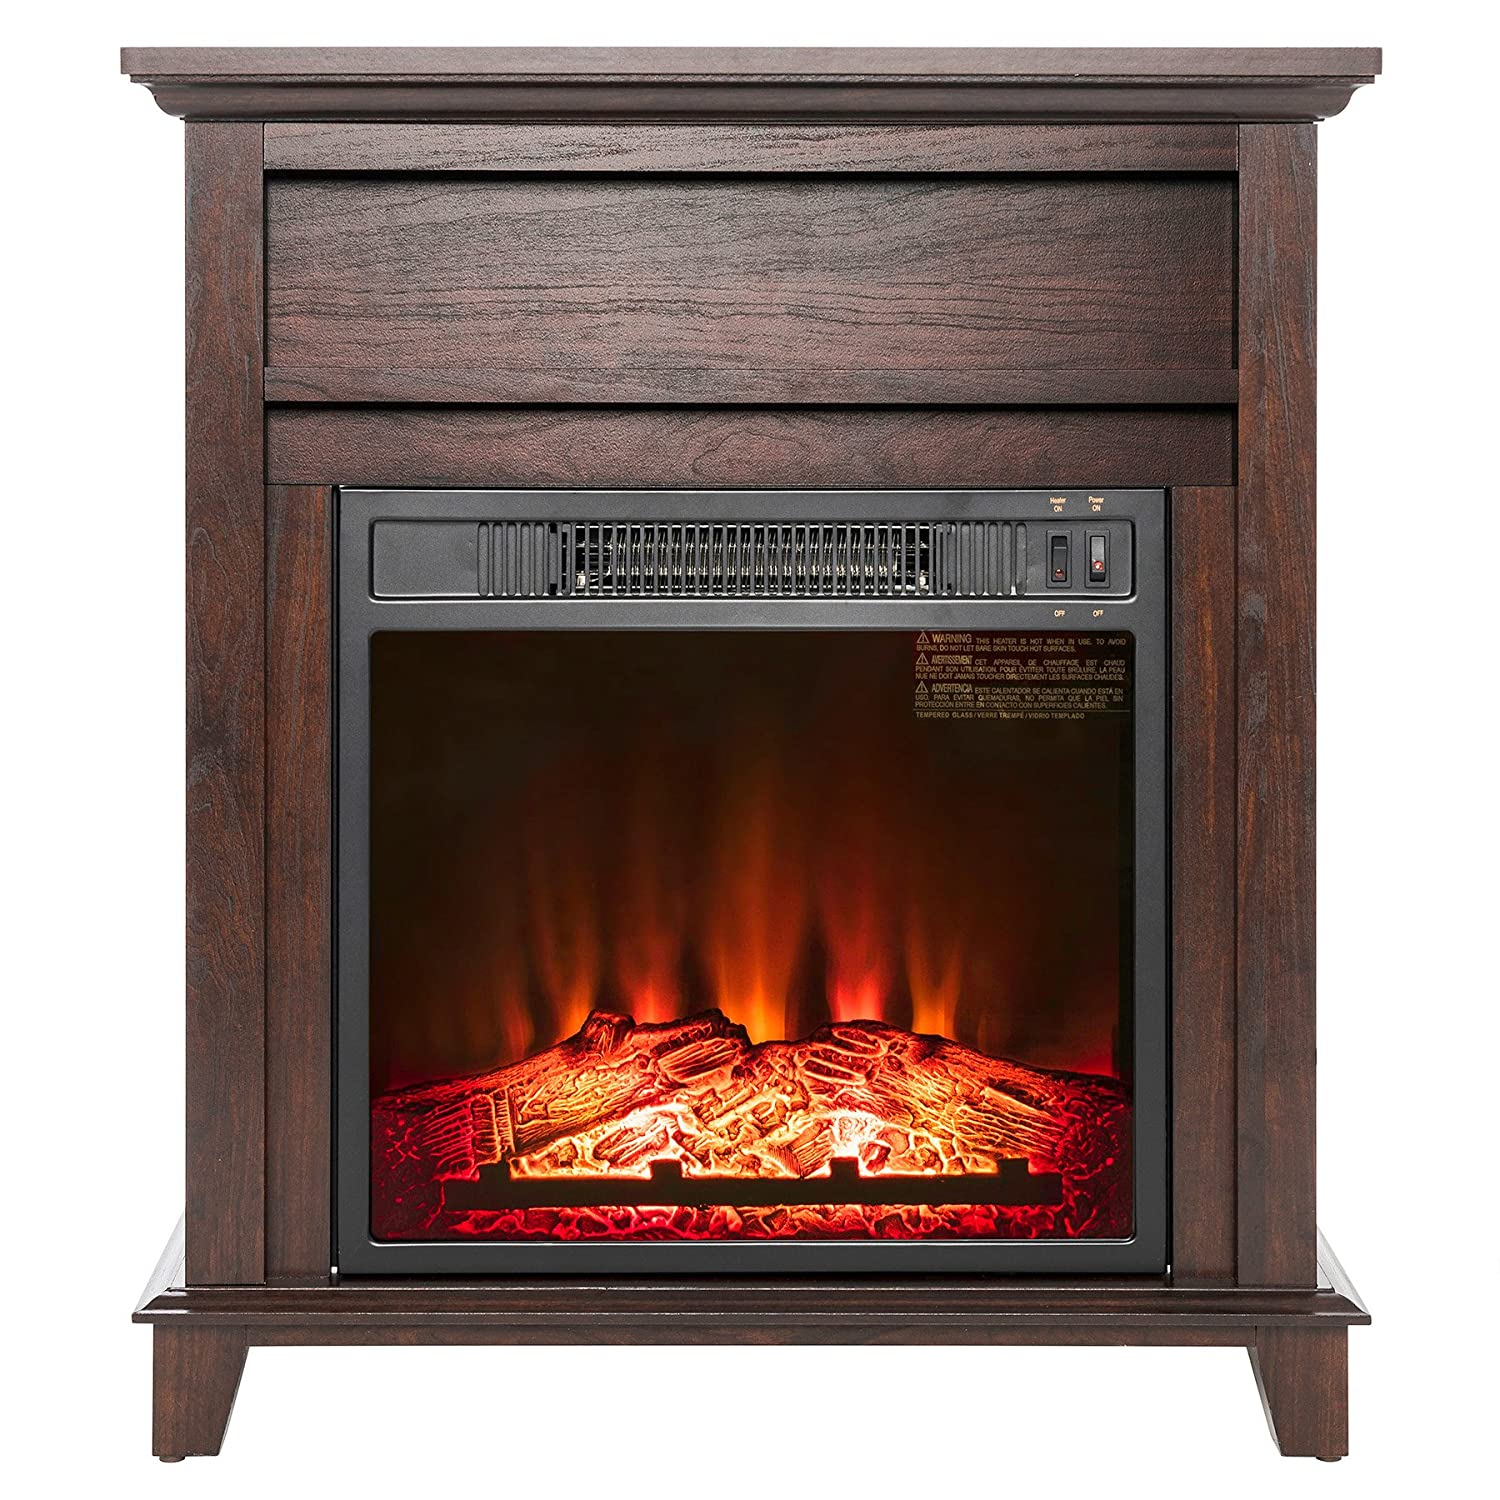 AKDY Electric Firebox Fireplace Review